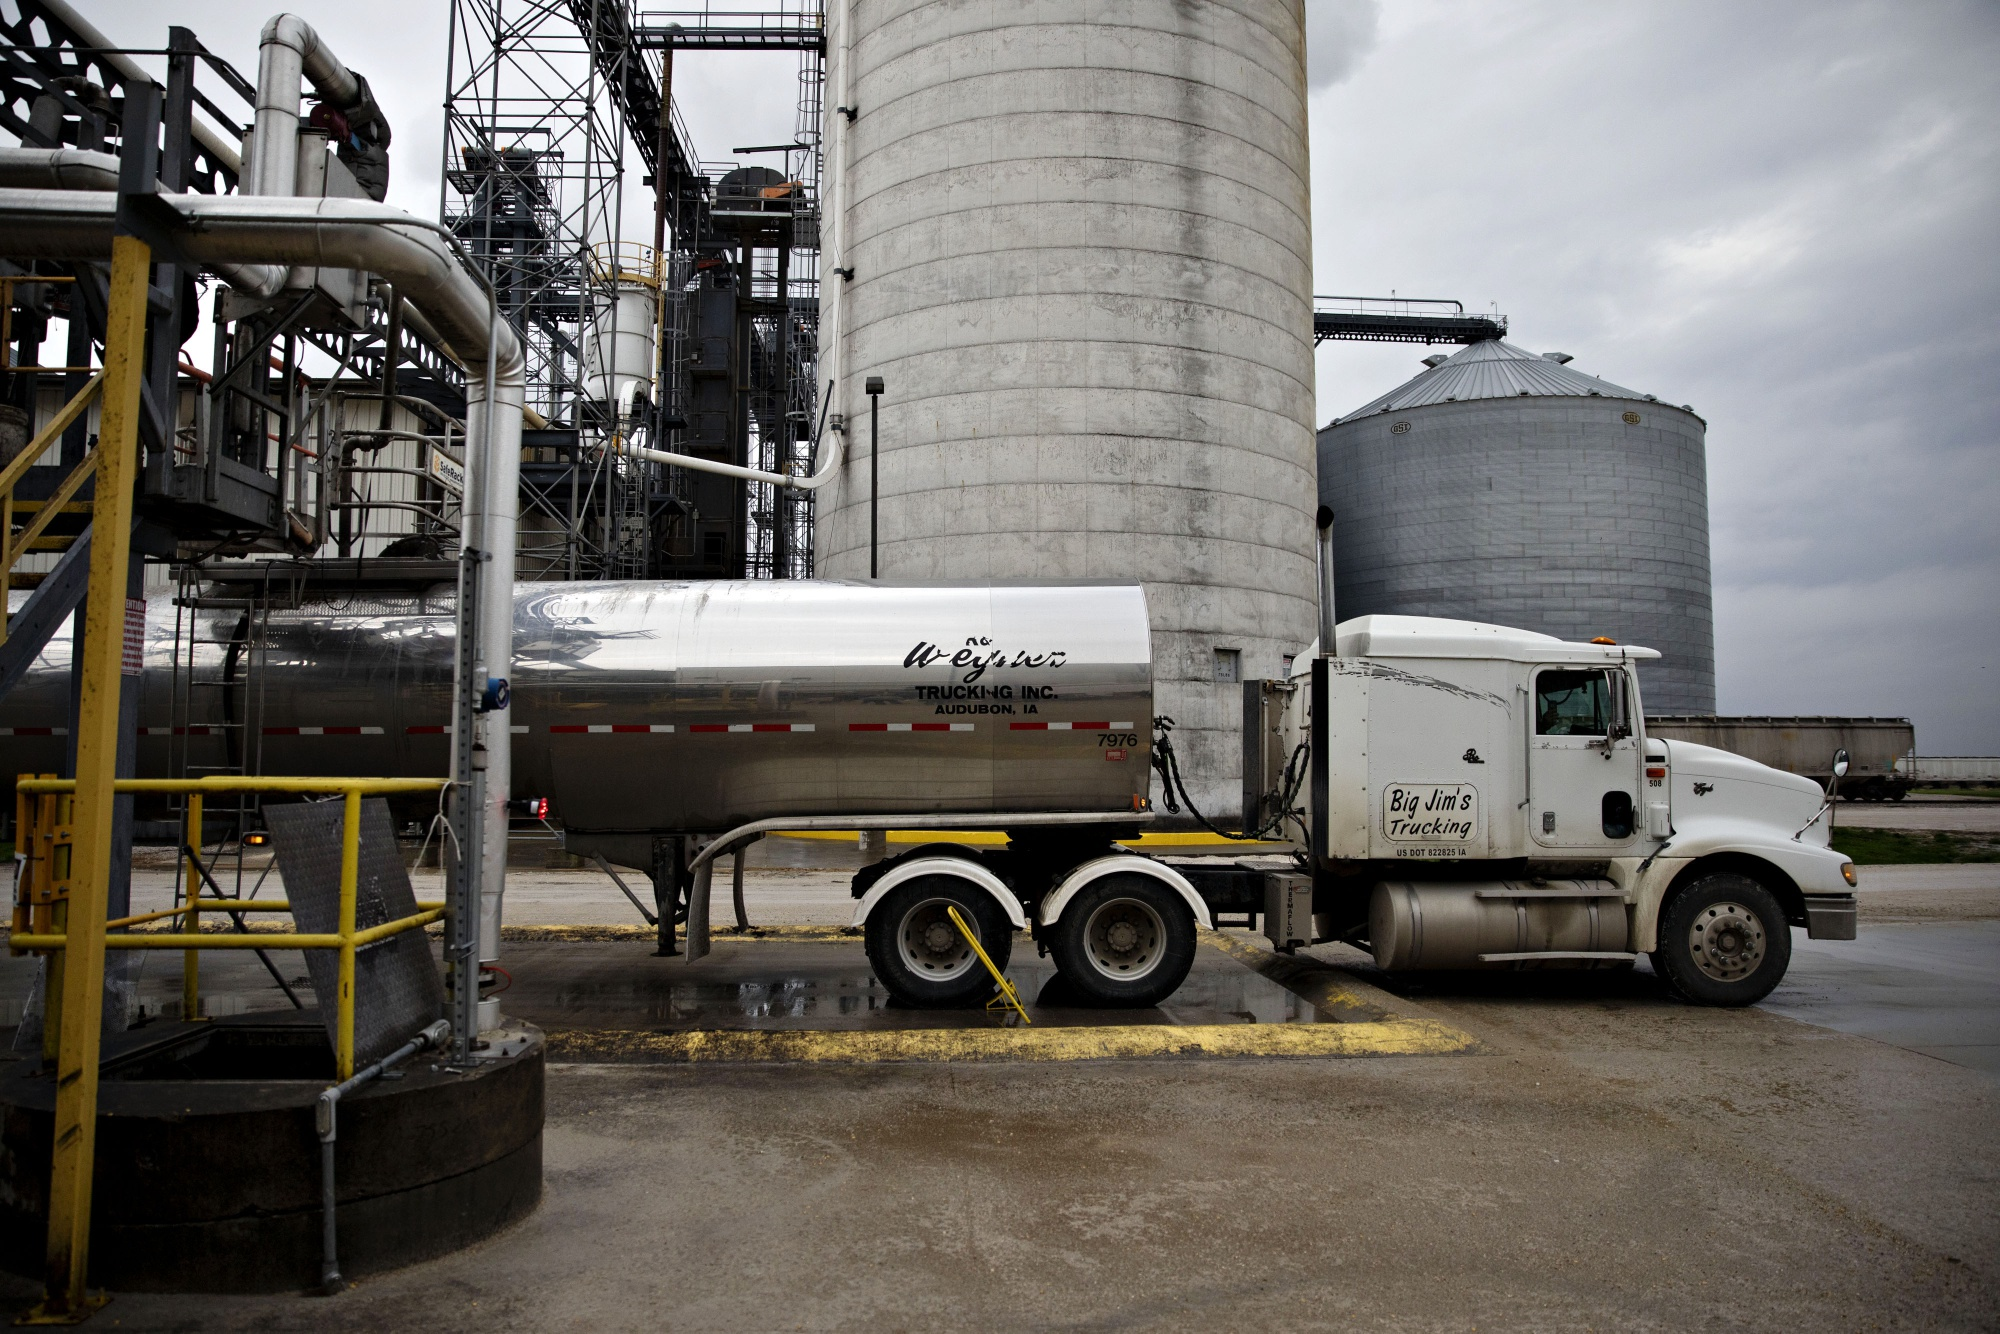 A tanker truck sits outside an ethanol biorefinery in Gowrie, Iowa.